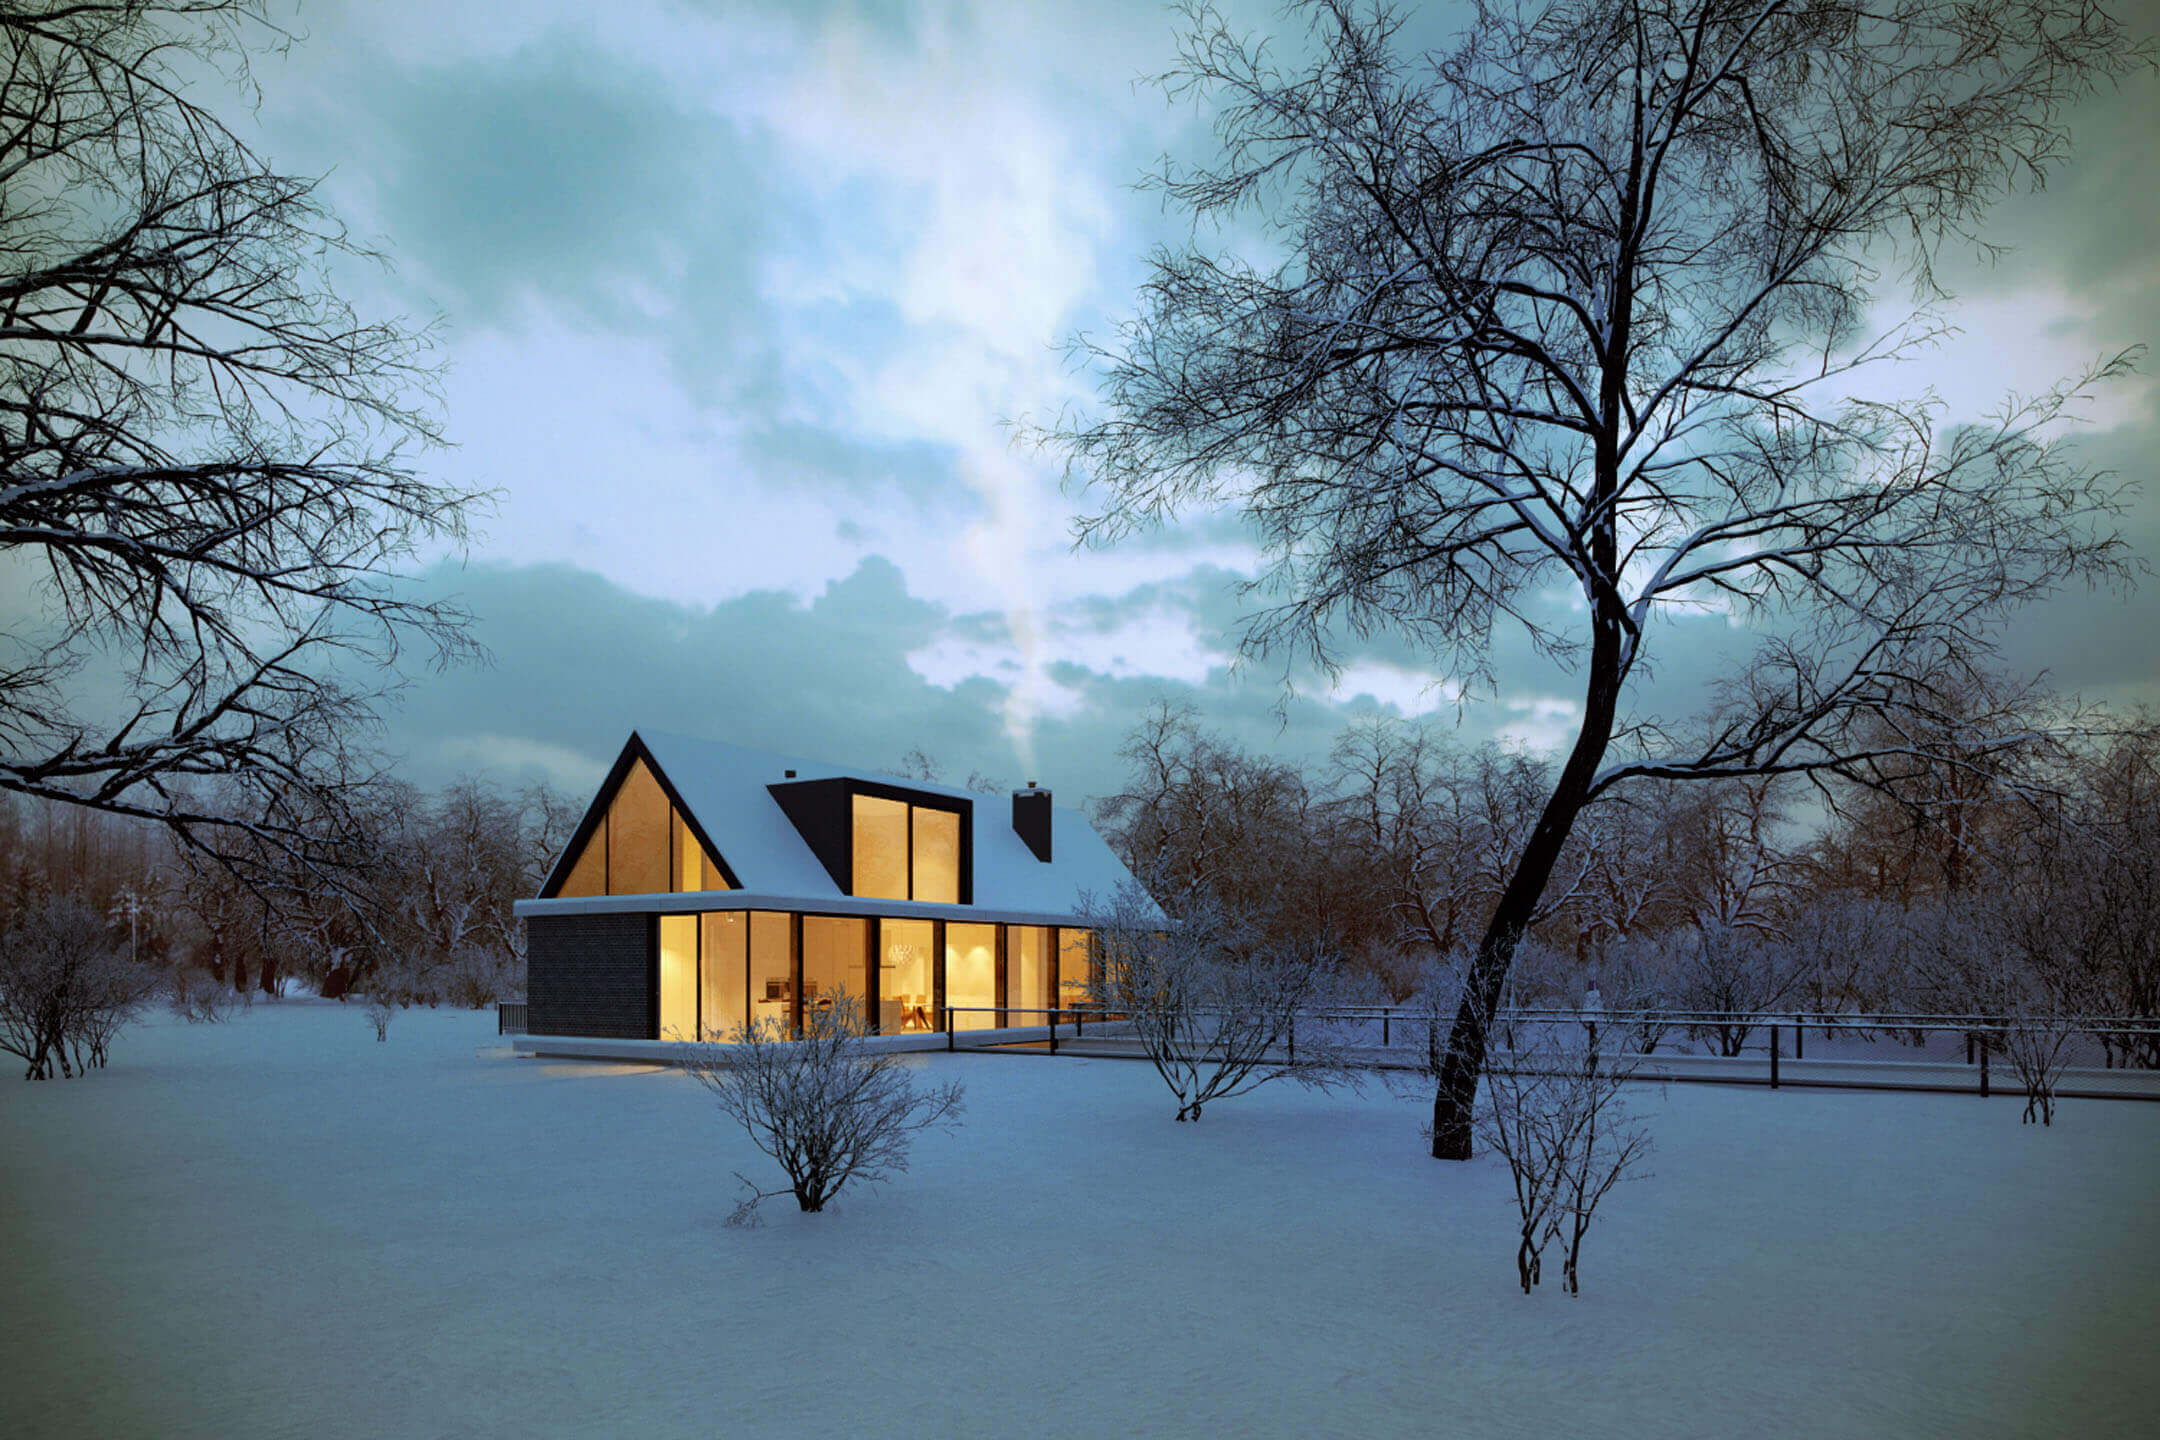 3D Exterior Visualization Of A Cozy House In Winter